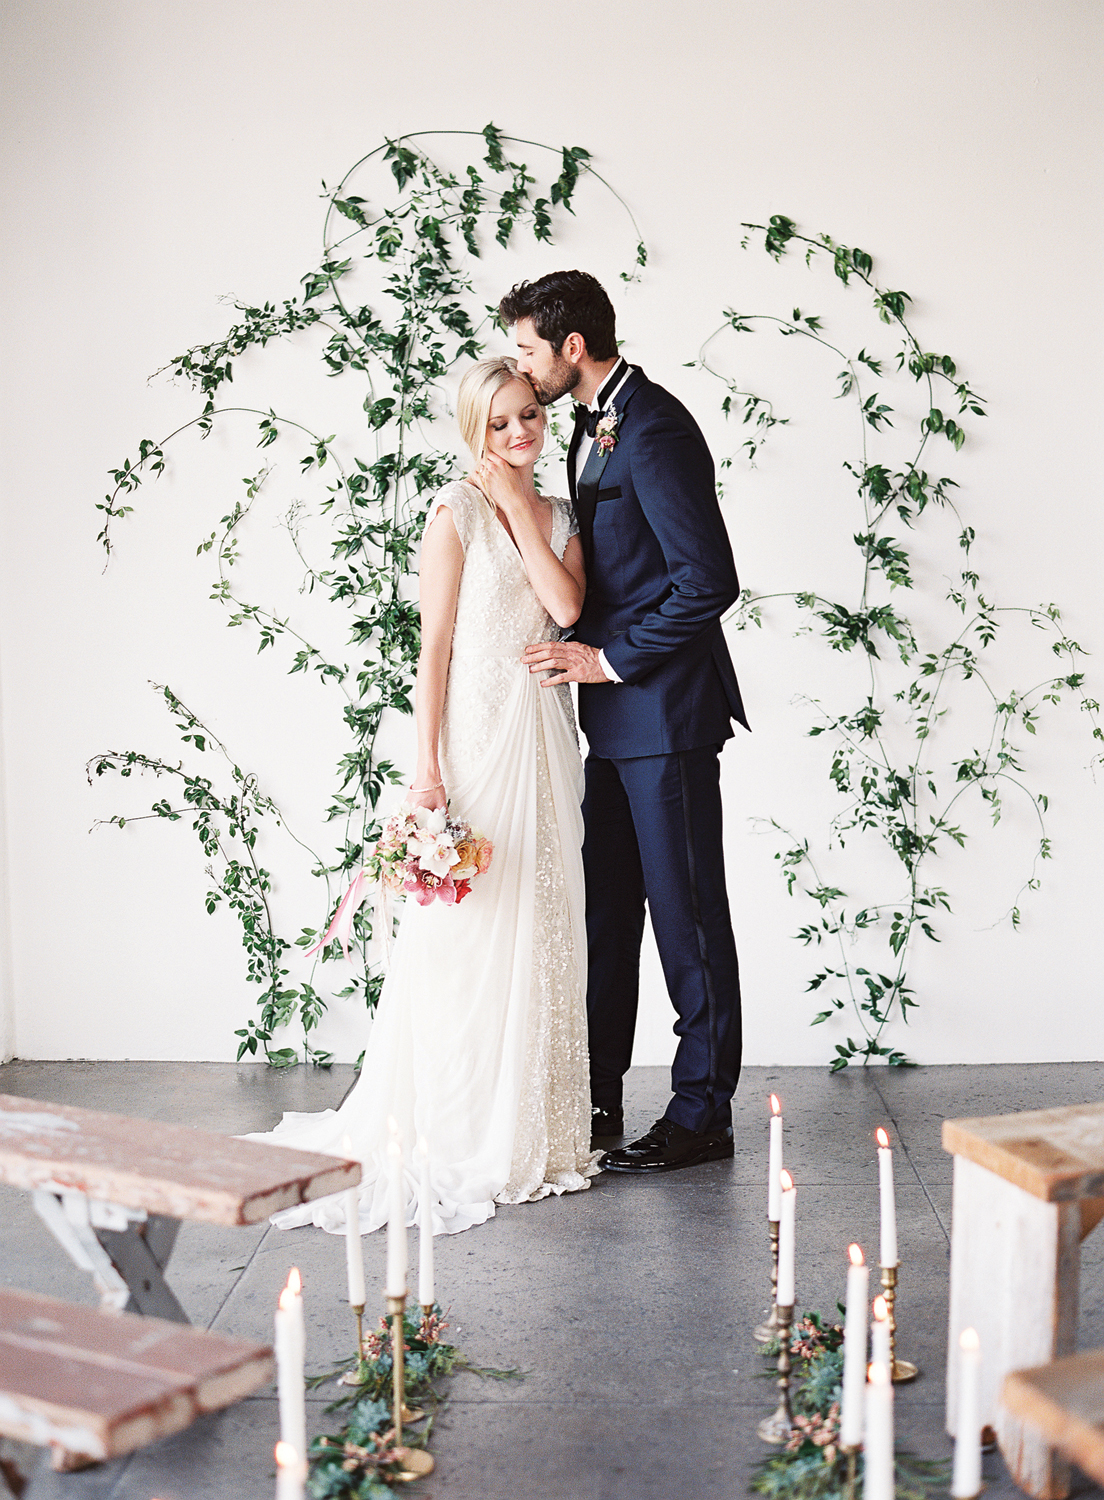 wedding_trend_ideas_and_styling_11.jpg